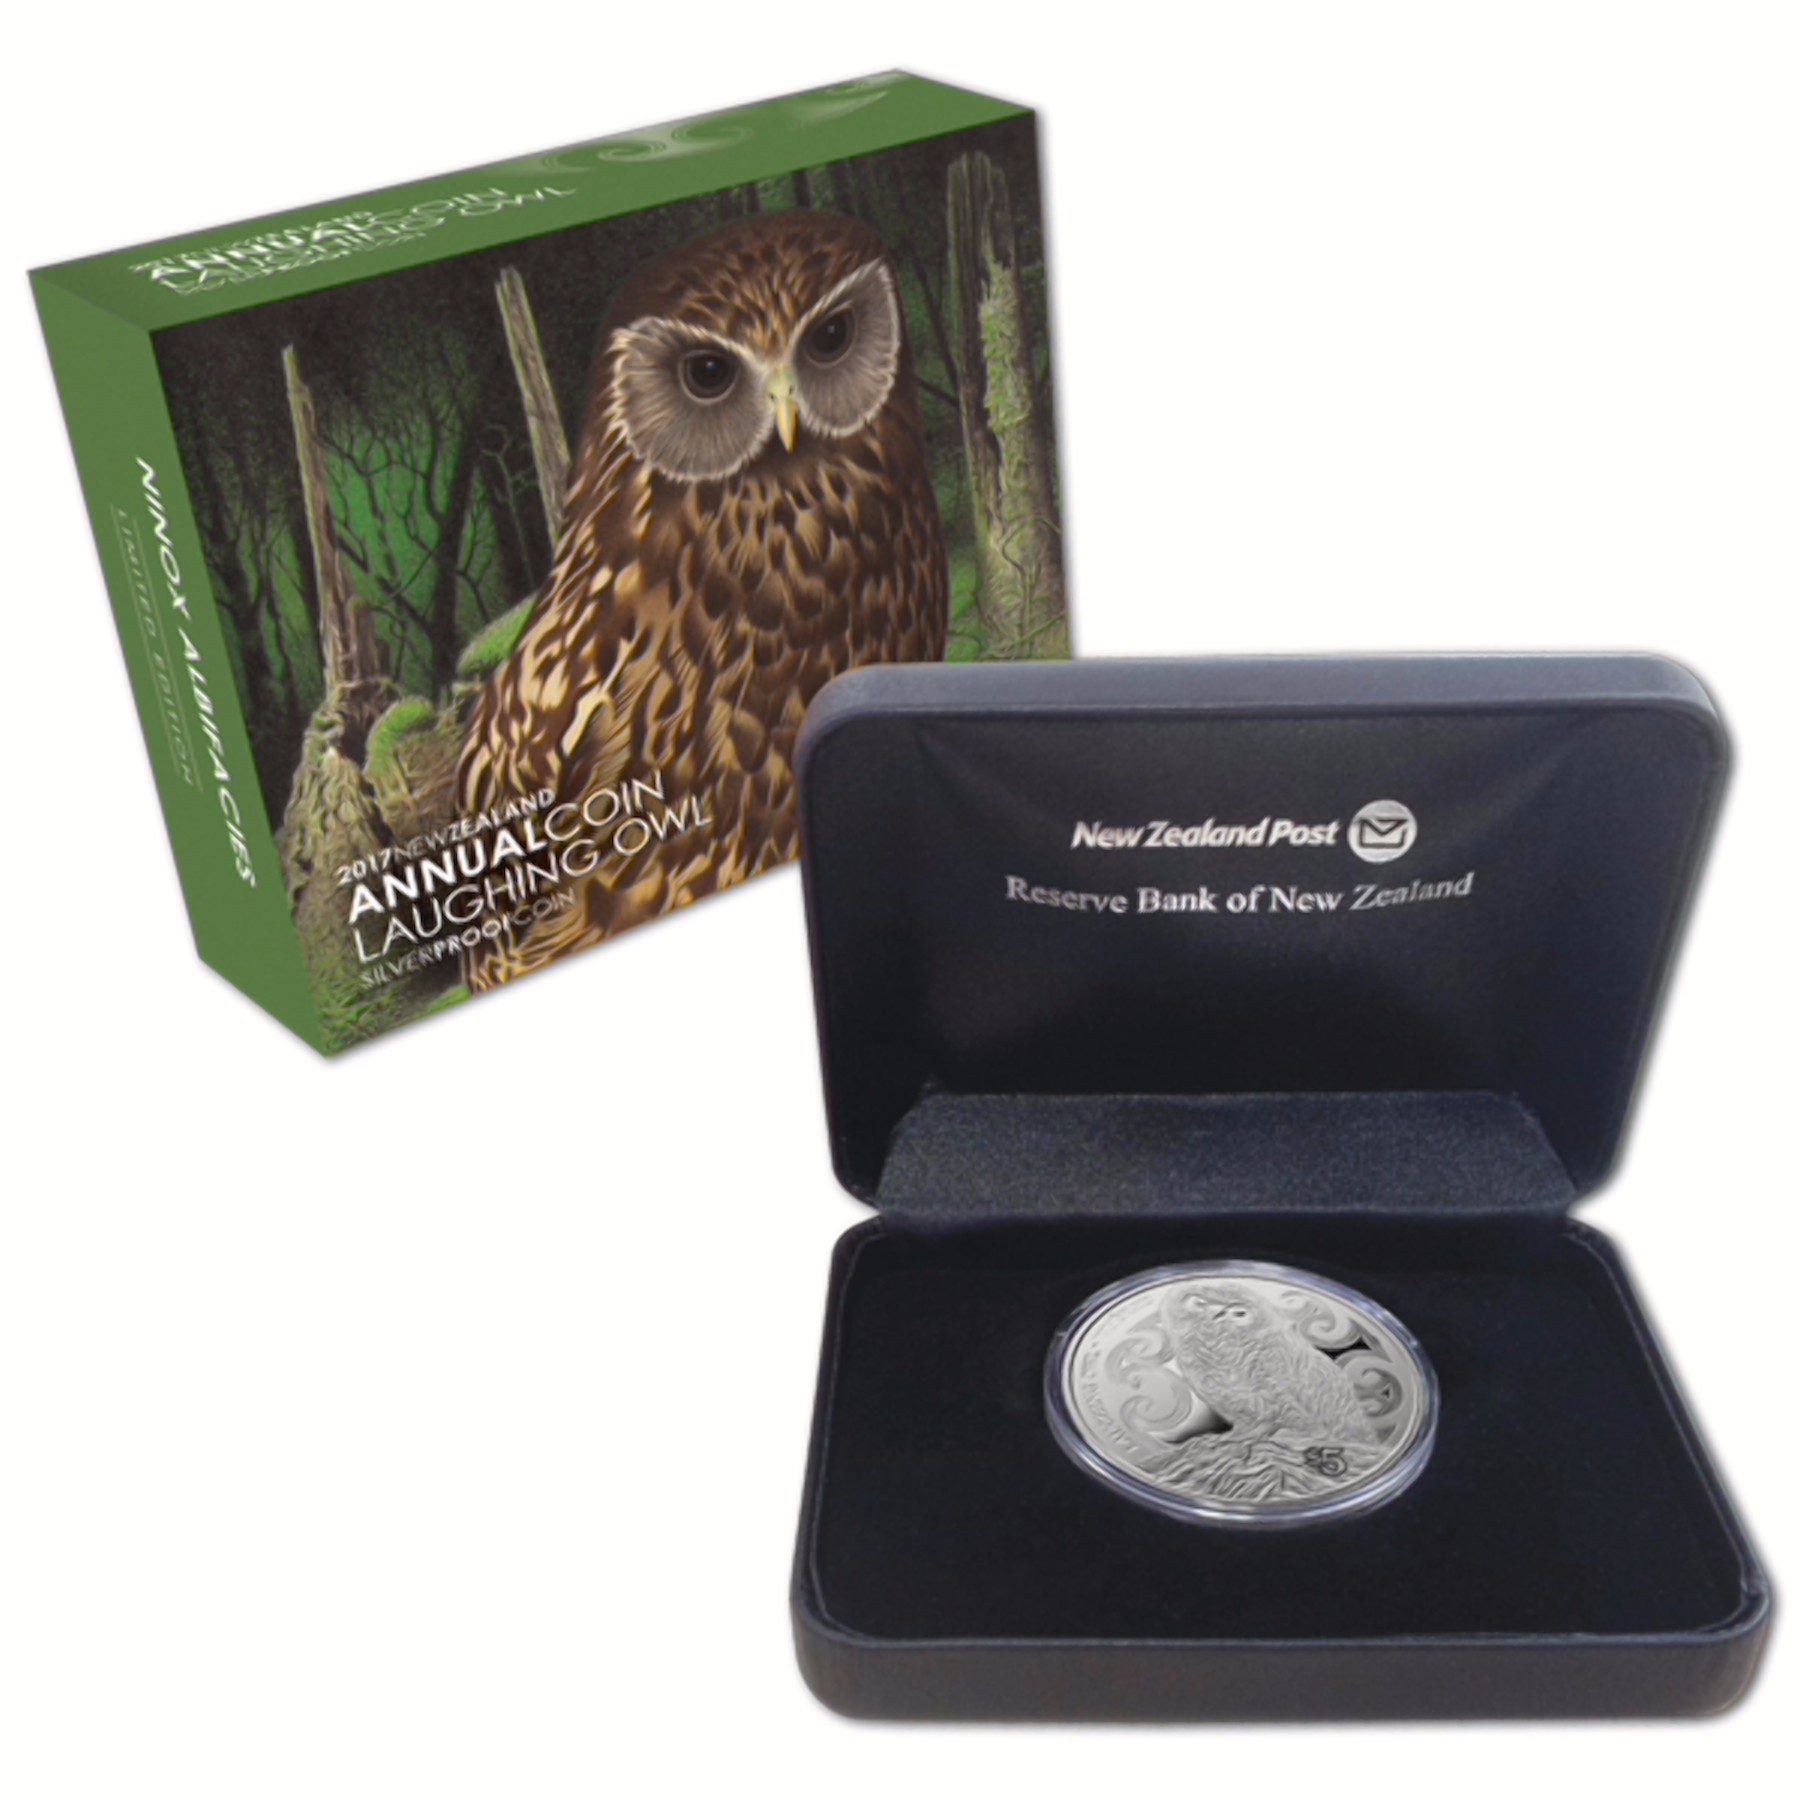 Laughing Owl Pure Silver Coin From New Zealand World